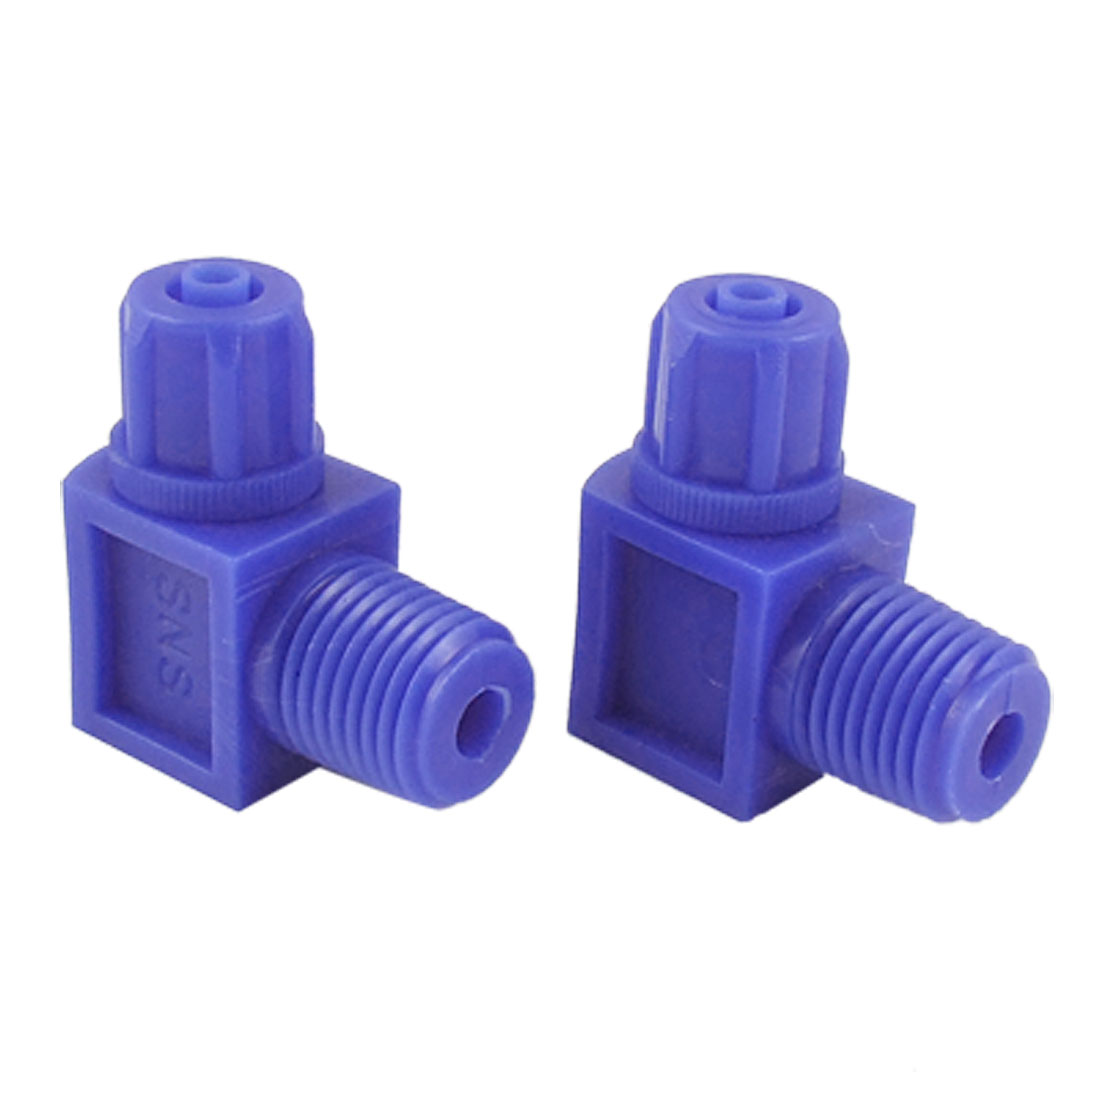 2 Pcs 13mm Thread 4 x 6mm Pipe Elbow Pneumatic Quick Coupler